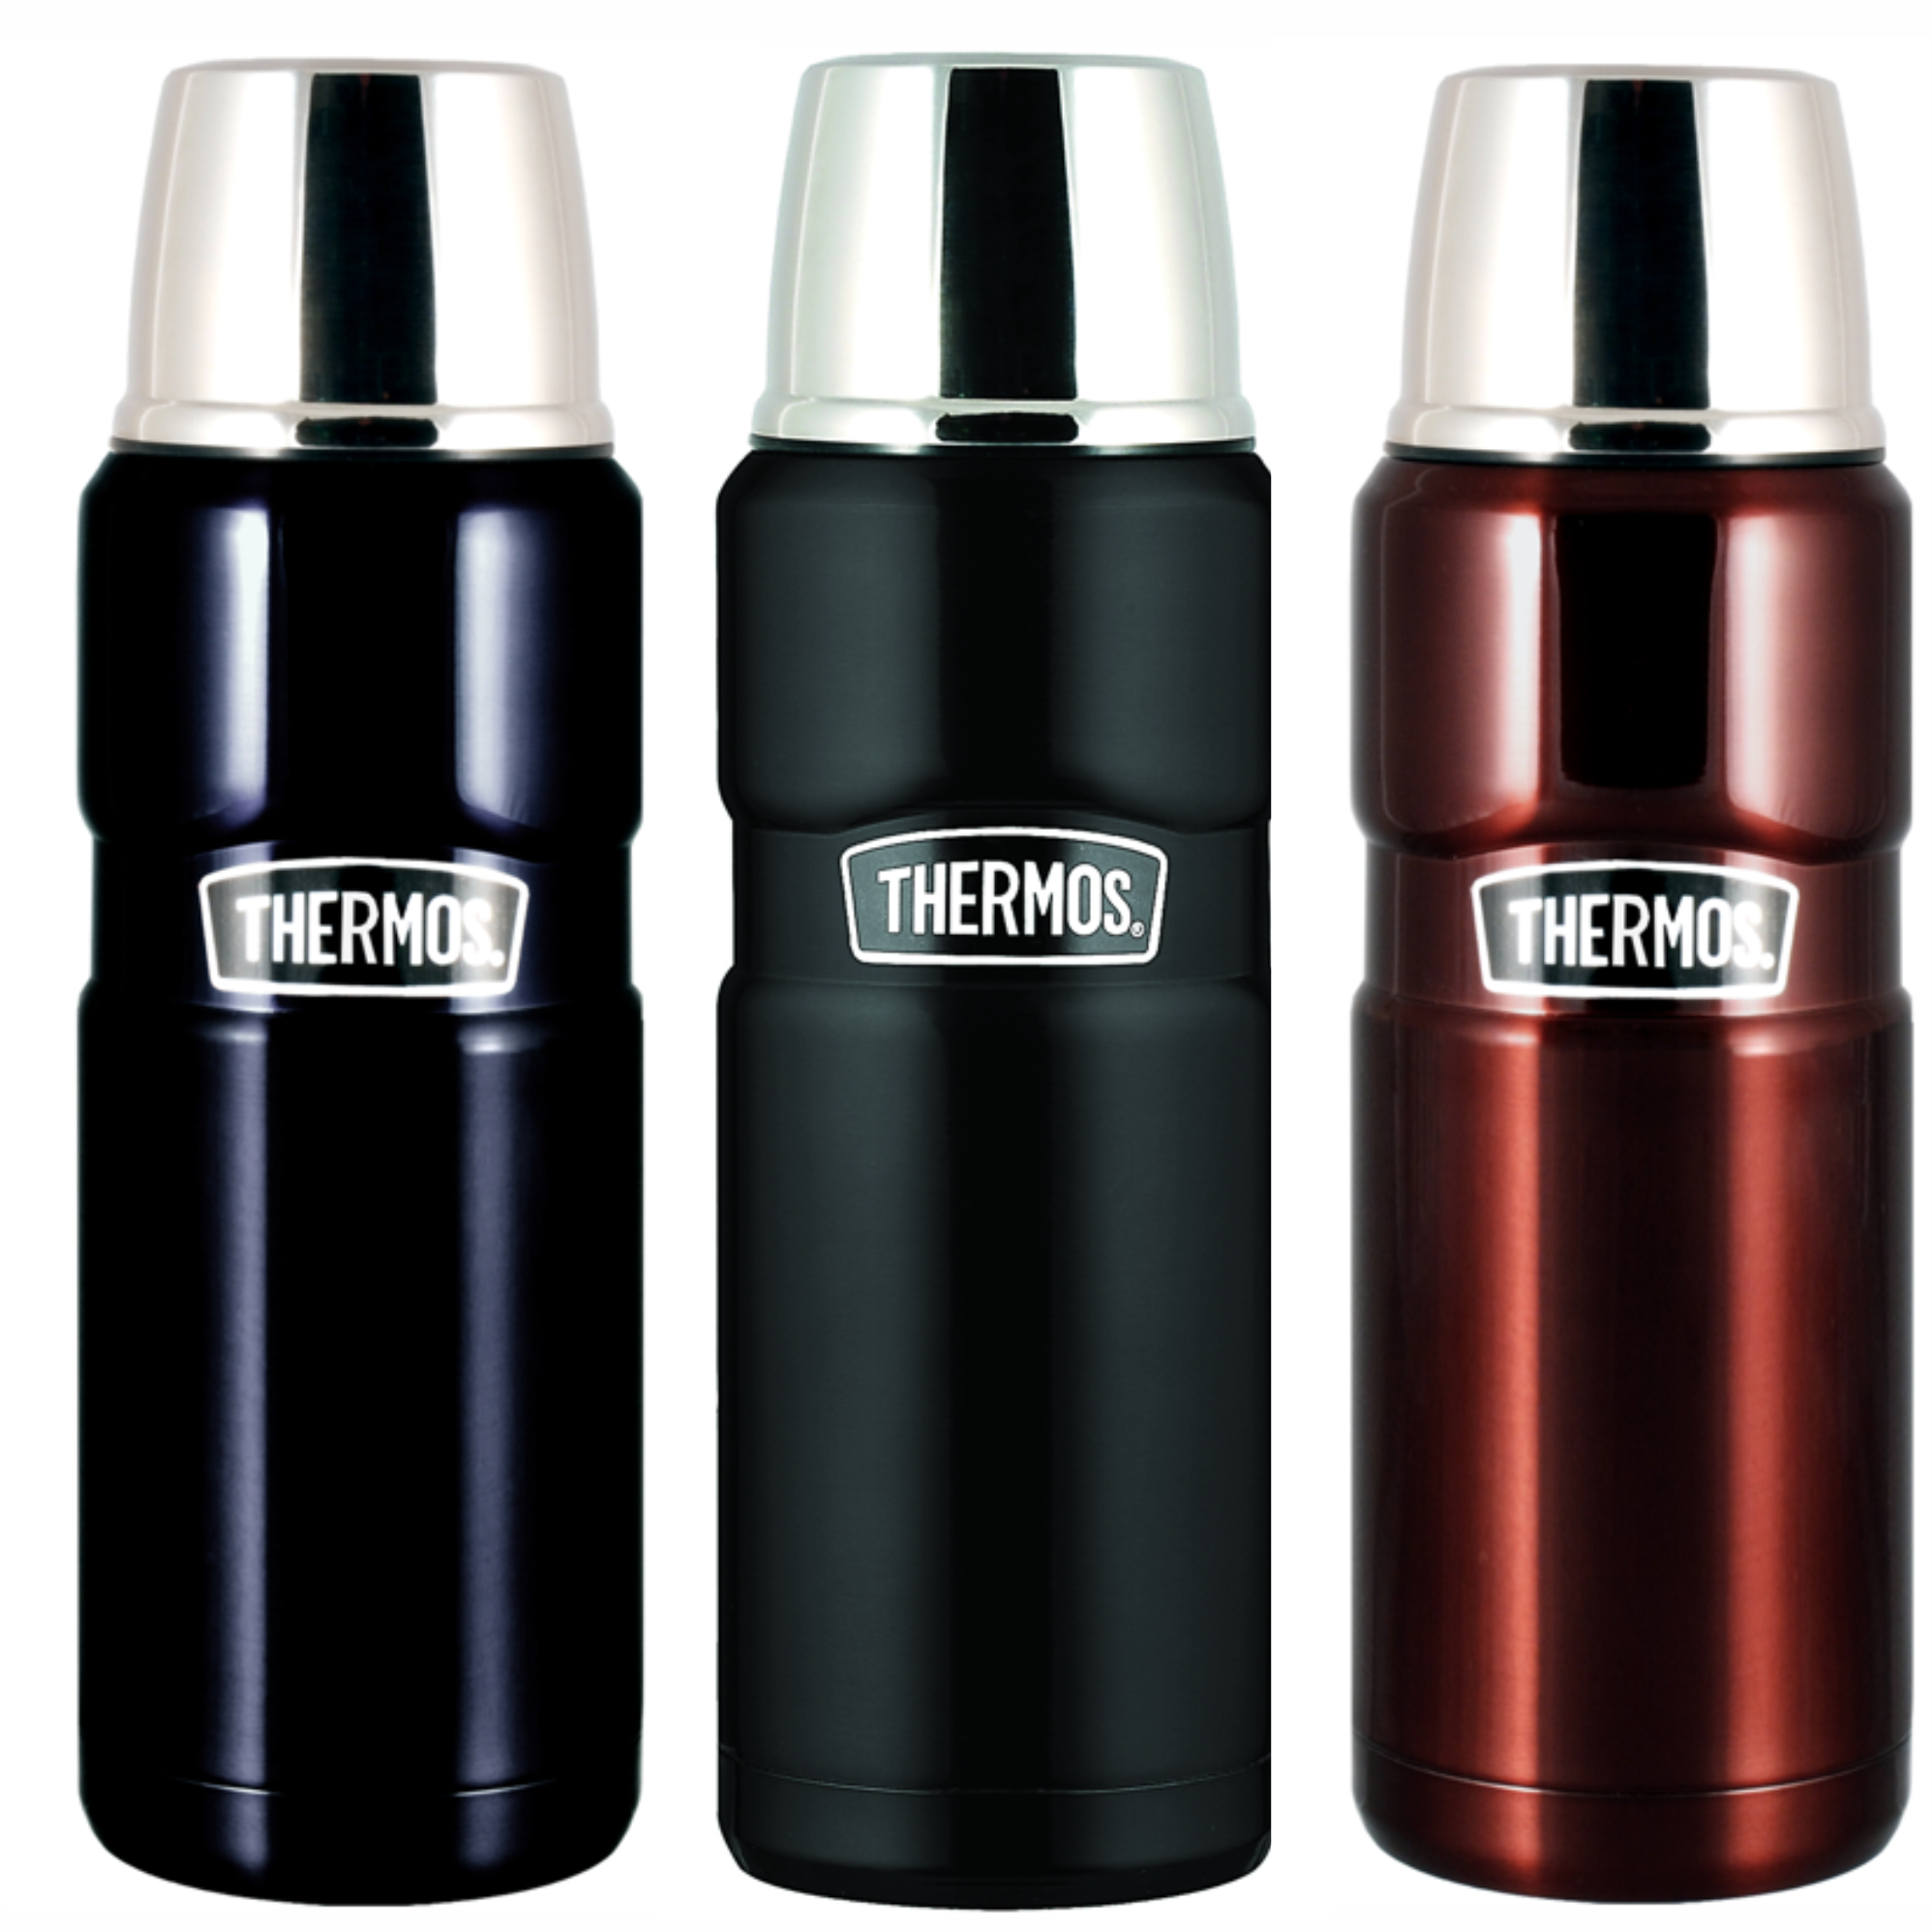 thermos thermo king st ltermos 1 2 liter. Black Bedroom Furniture Sets. Home Design Ideas